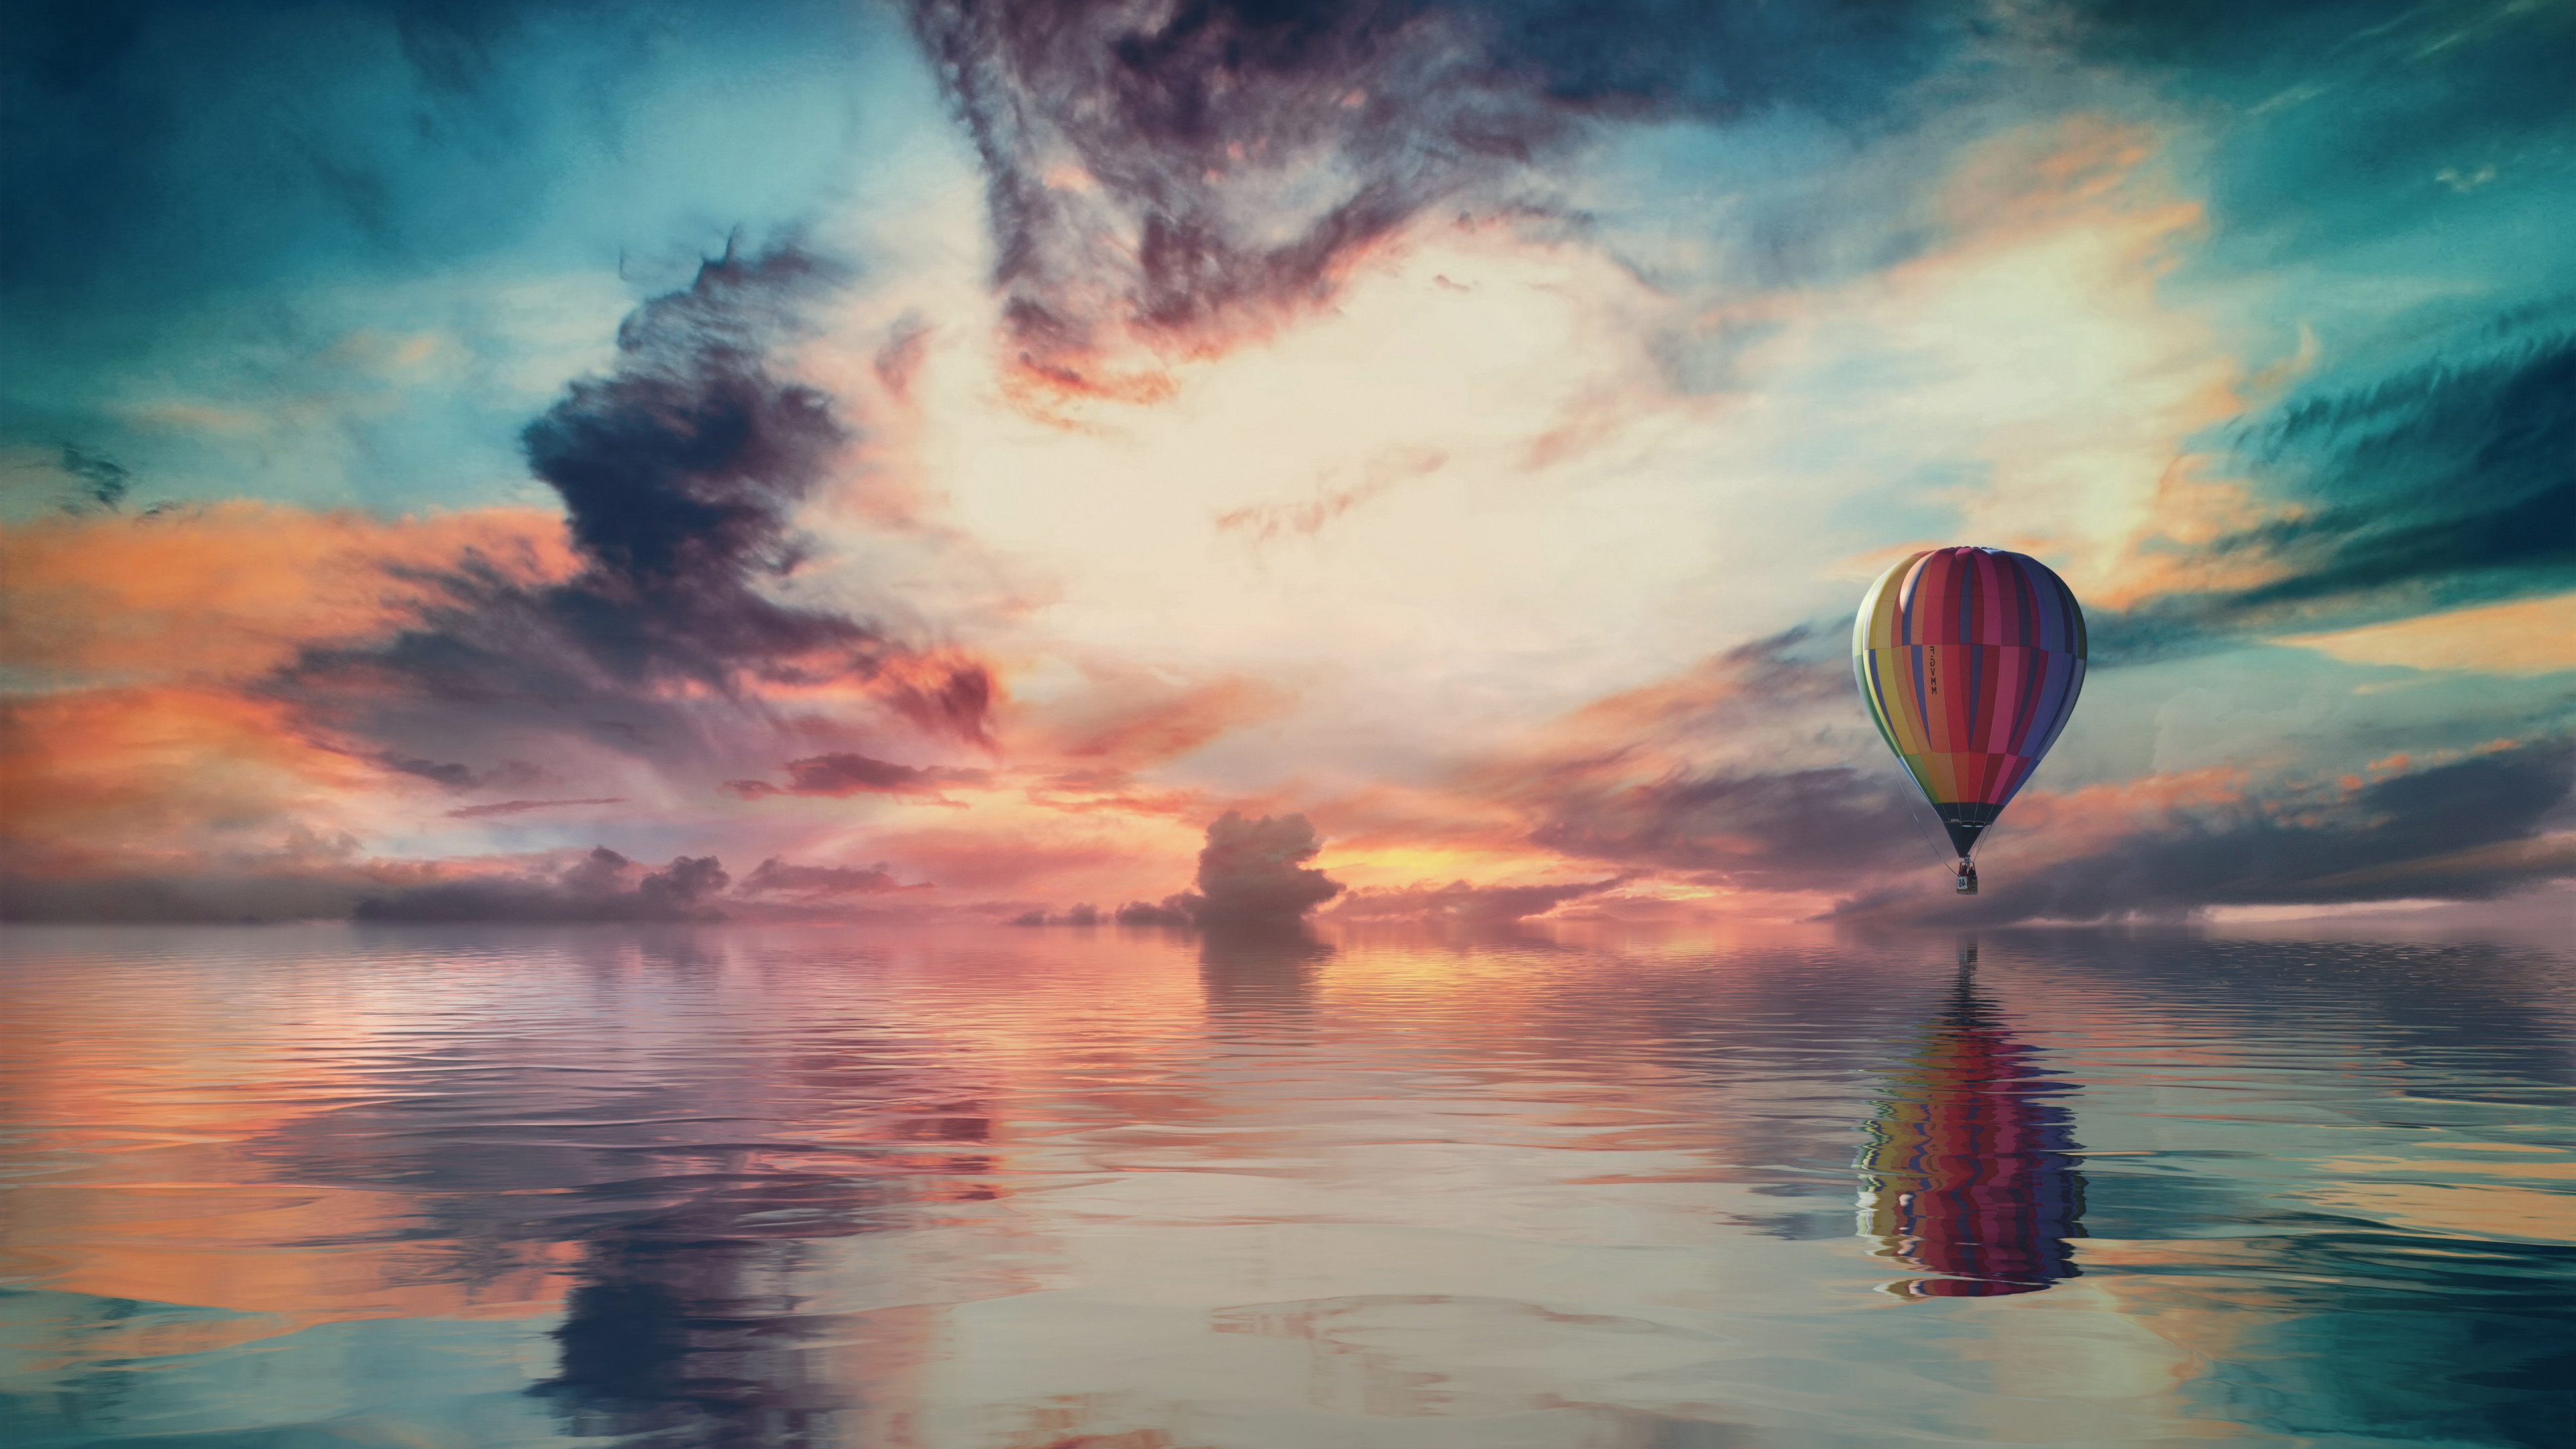 Fantasy travel with the hot air balloon wallpaper 3840x2160